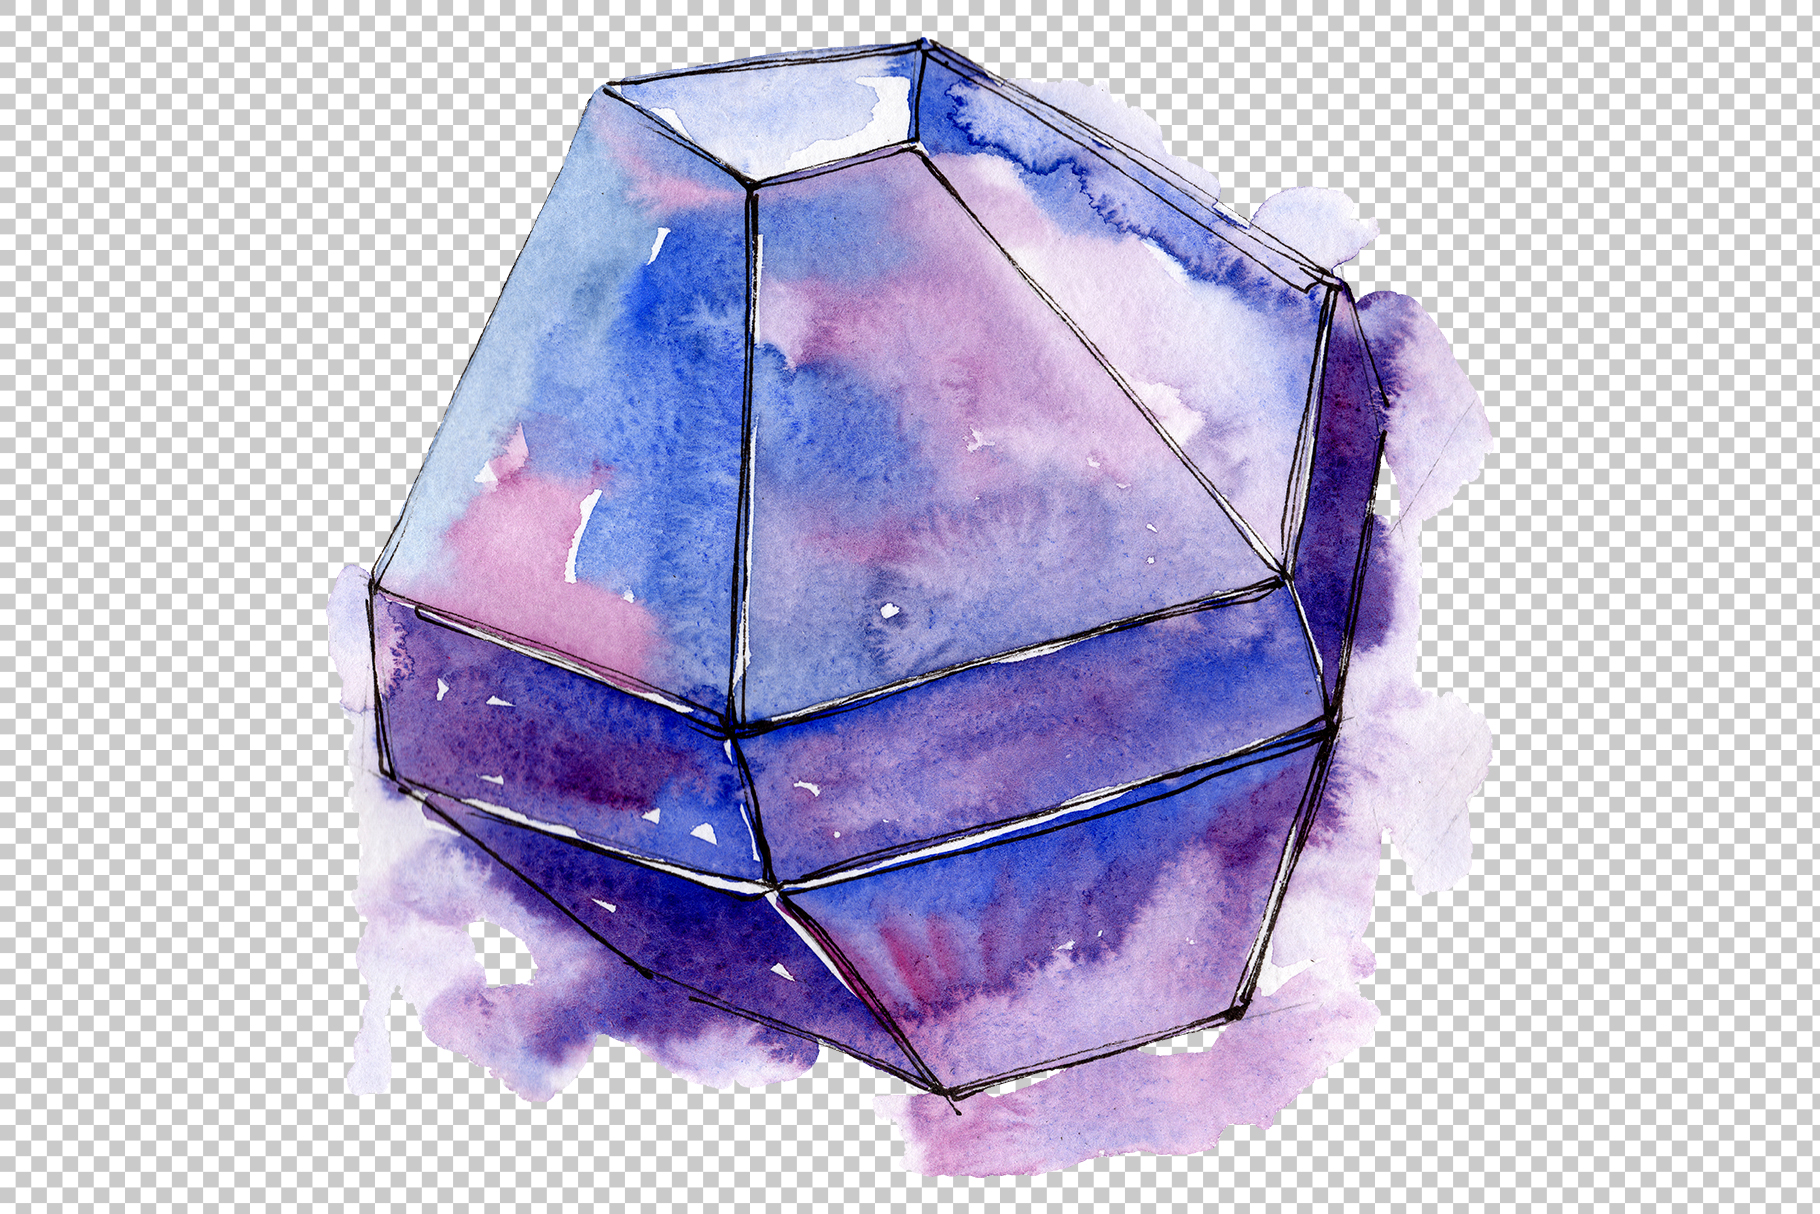 Violet crystals Watercolor png example image 3